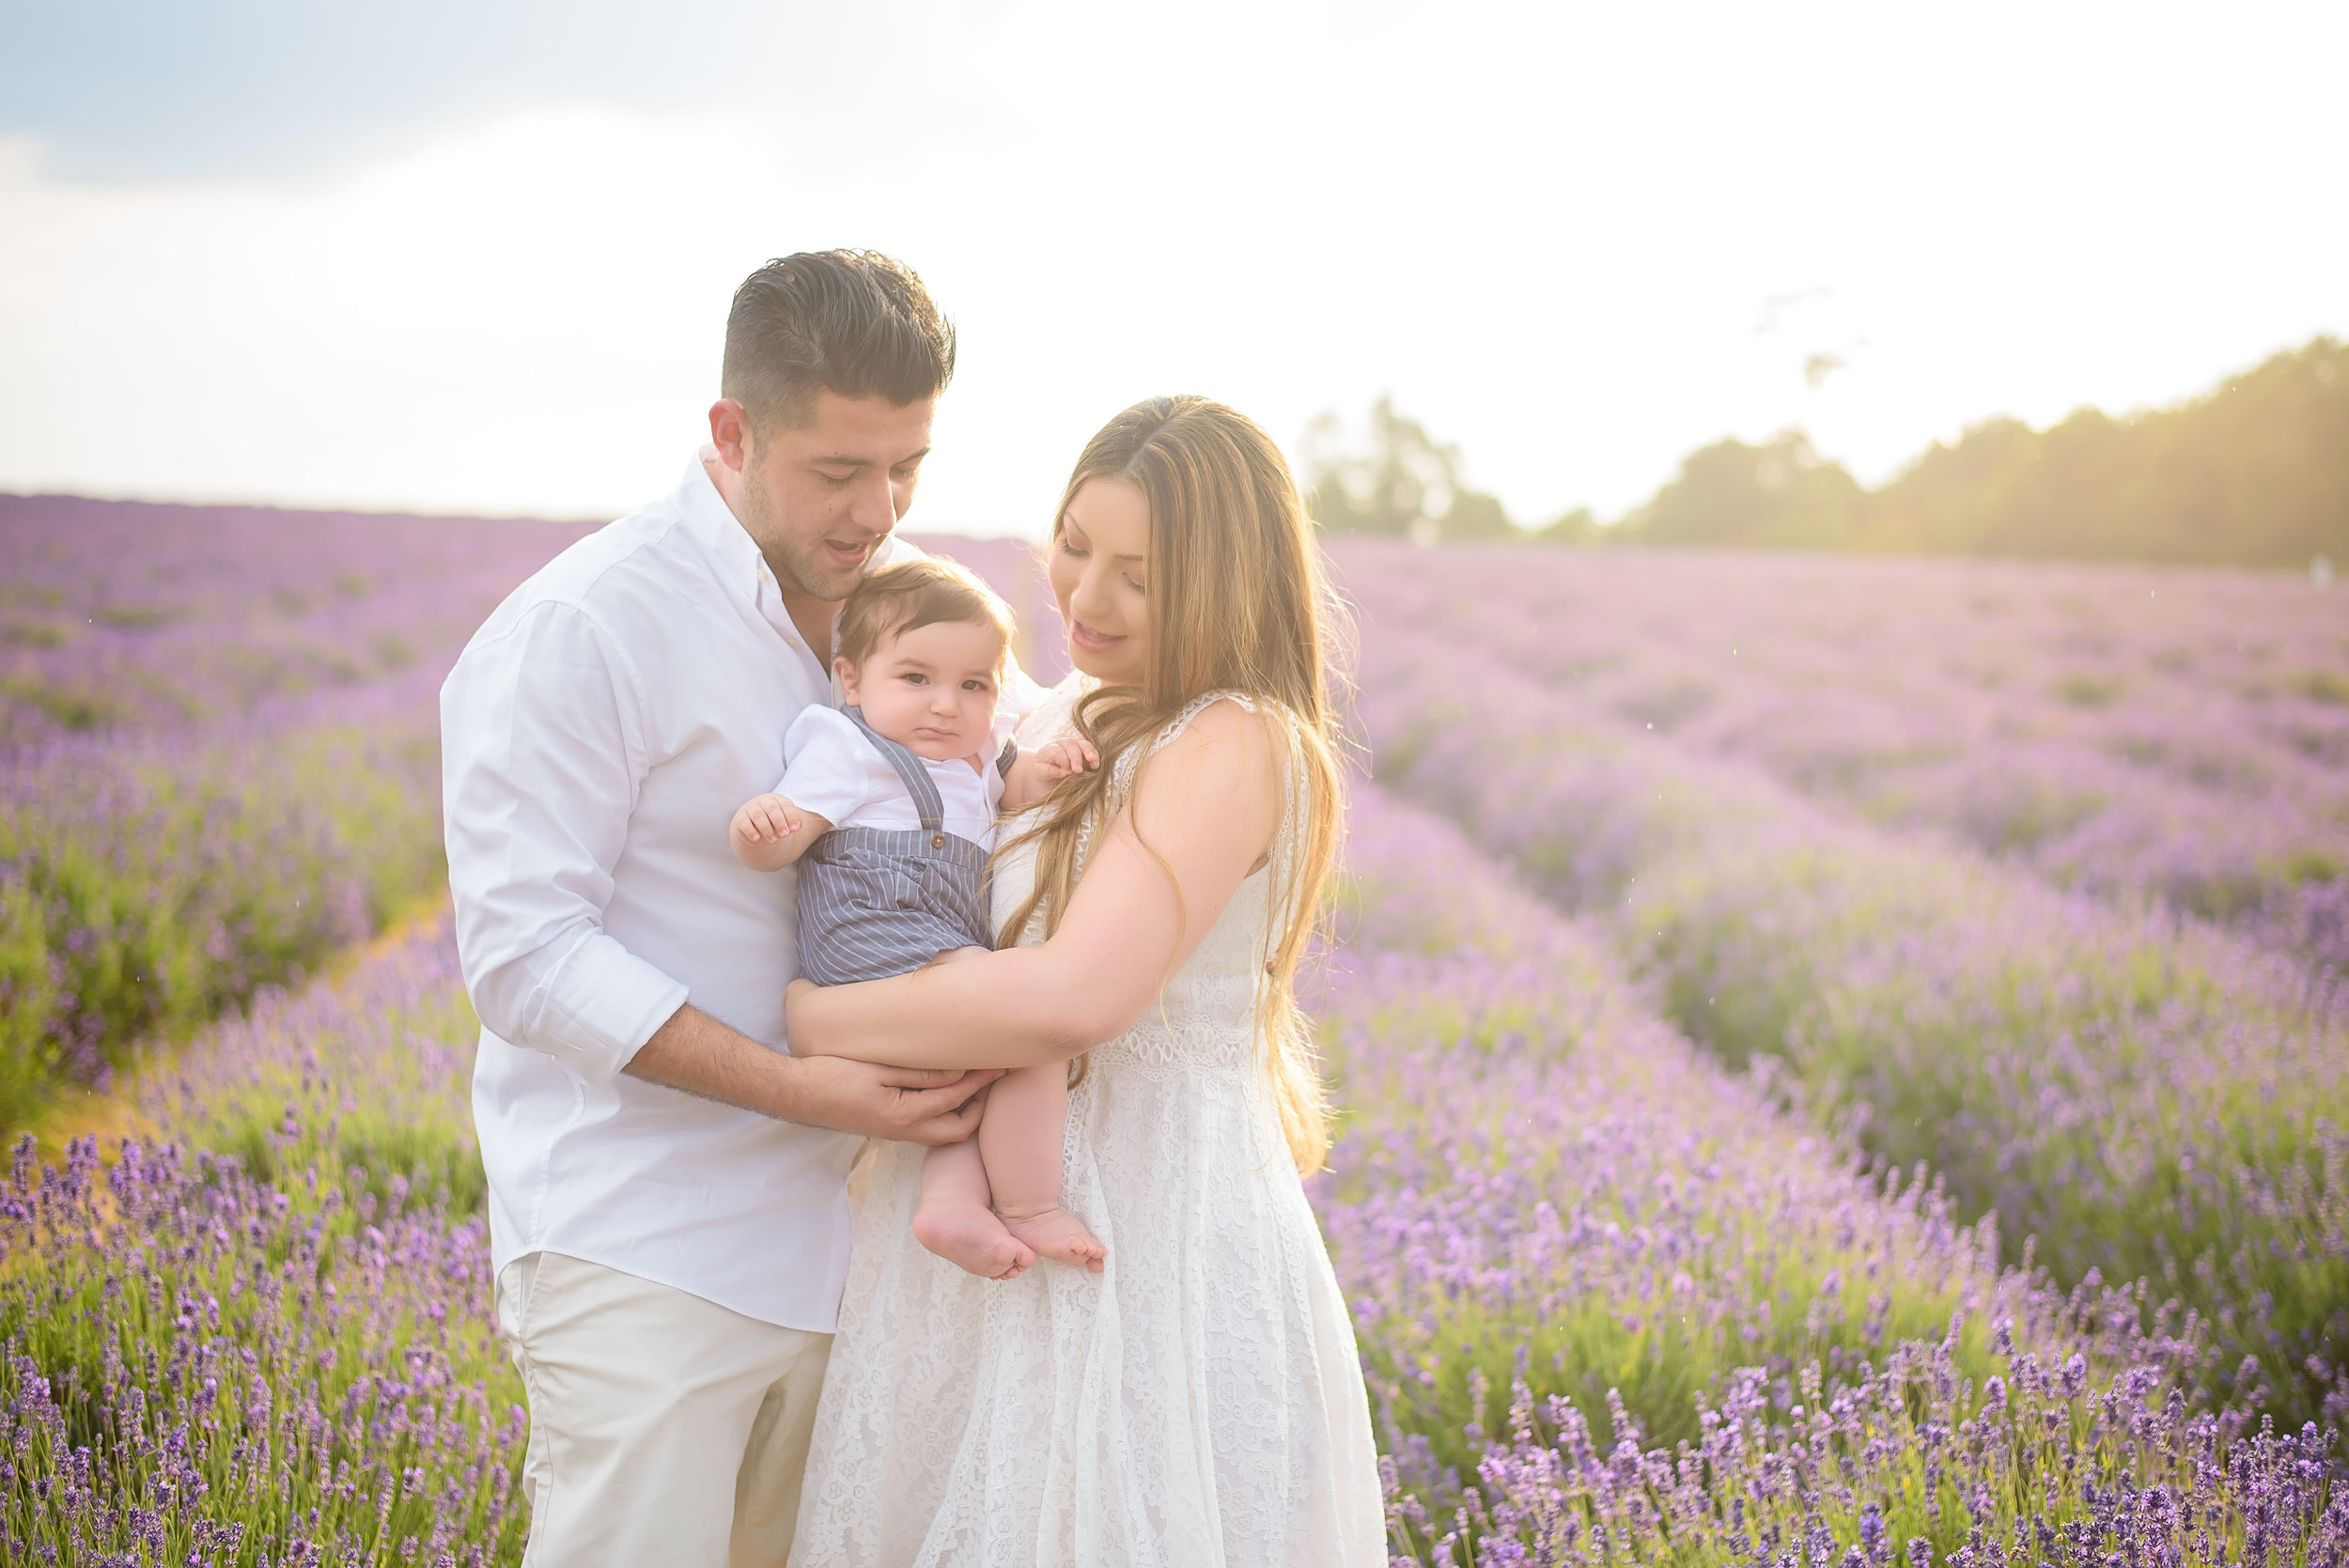 Lavender field family photo shoot London